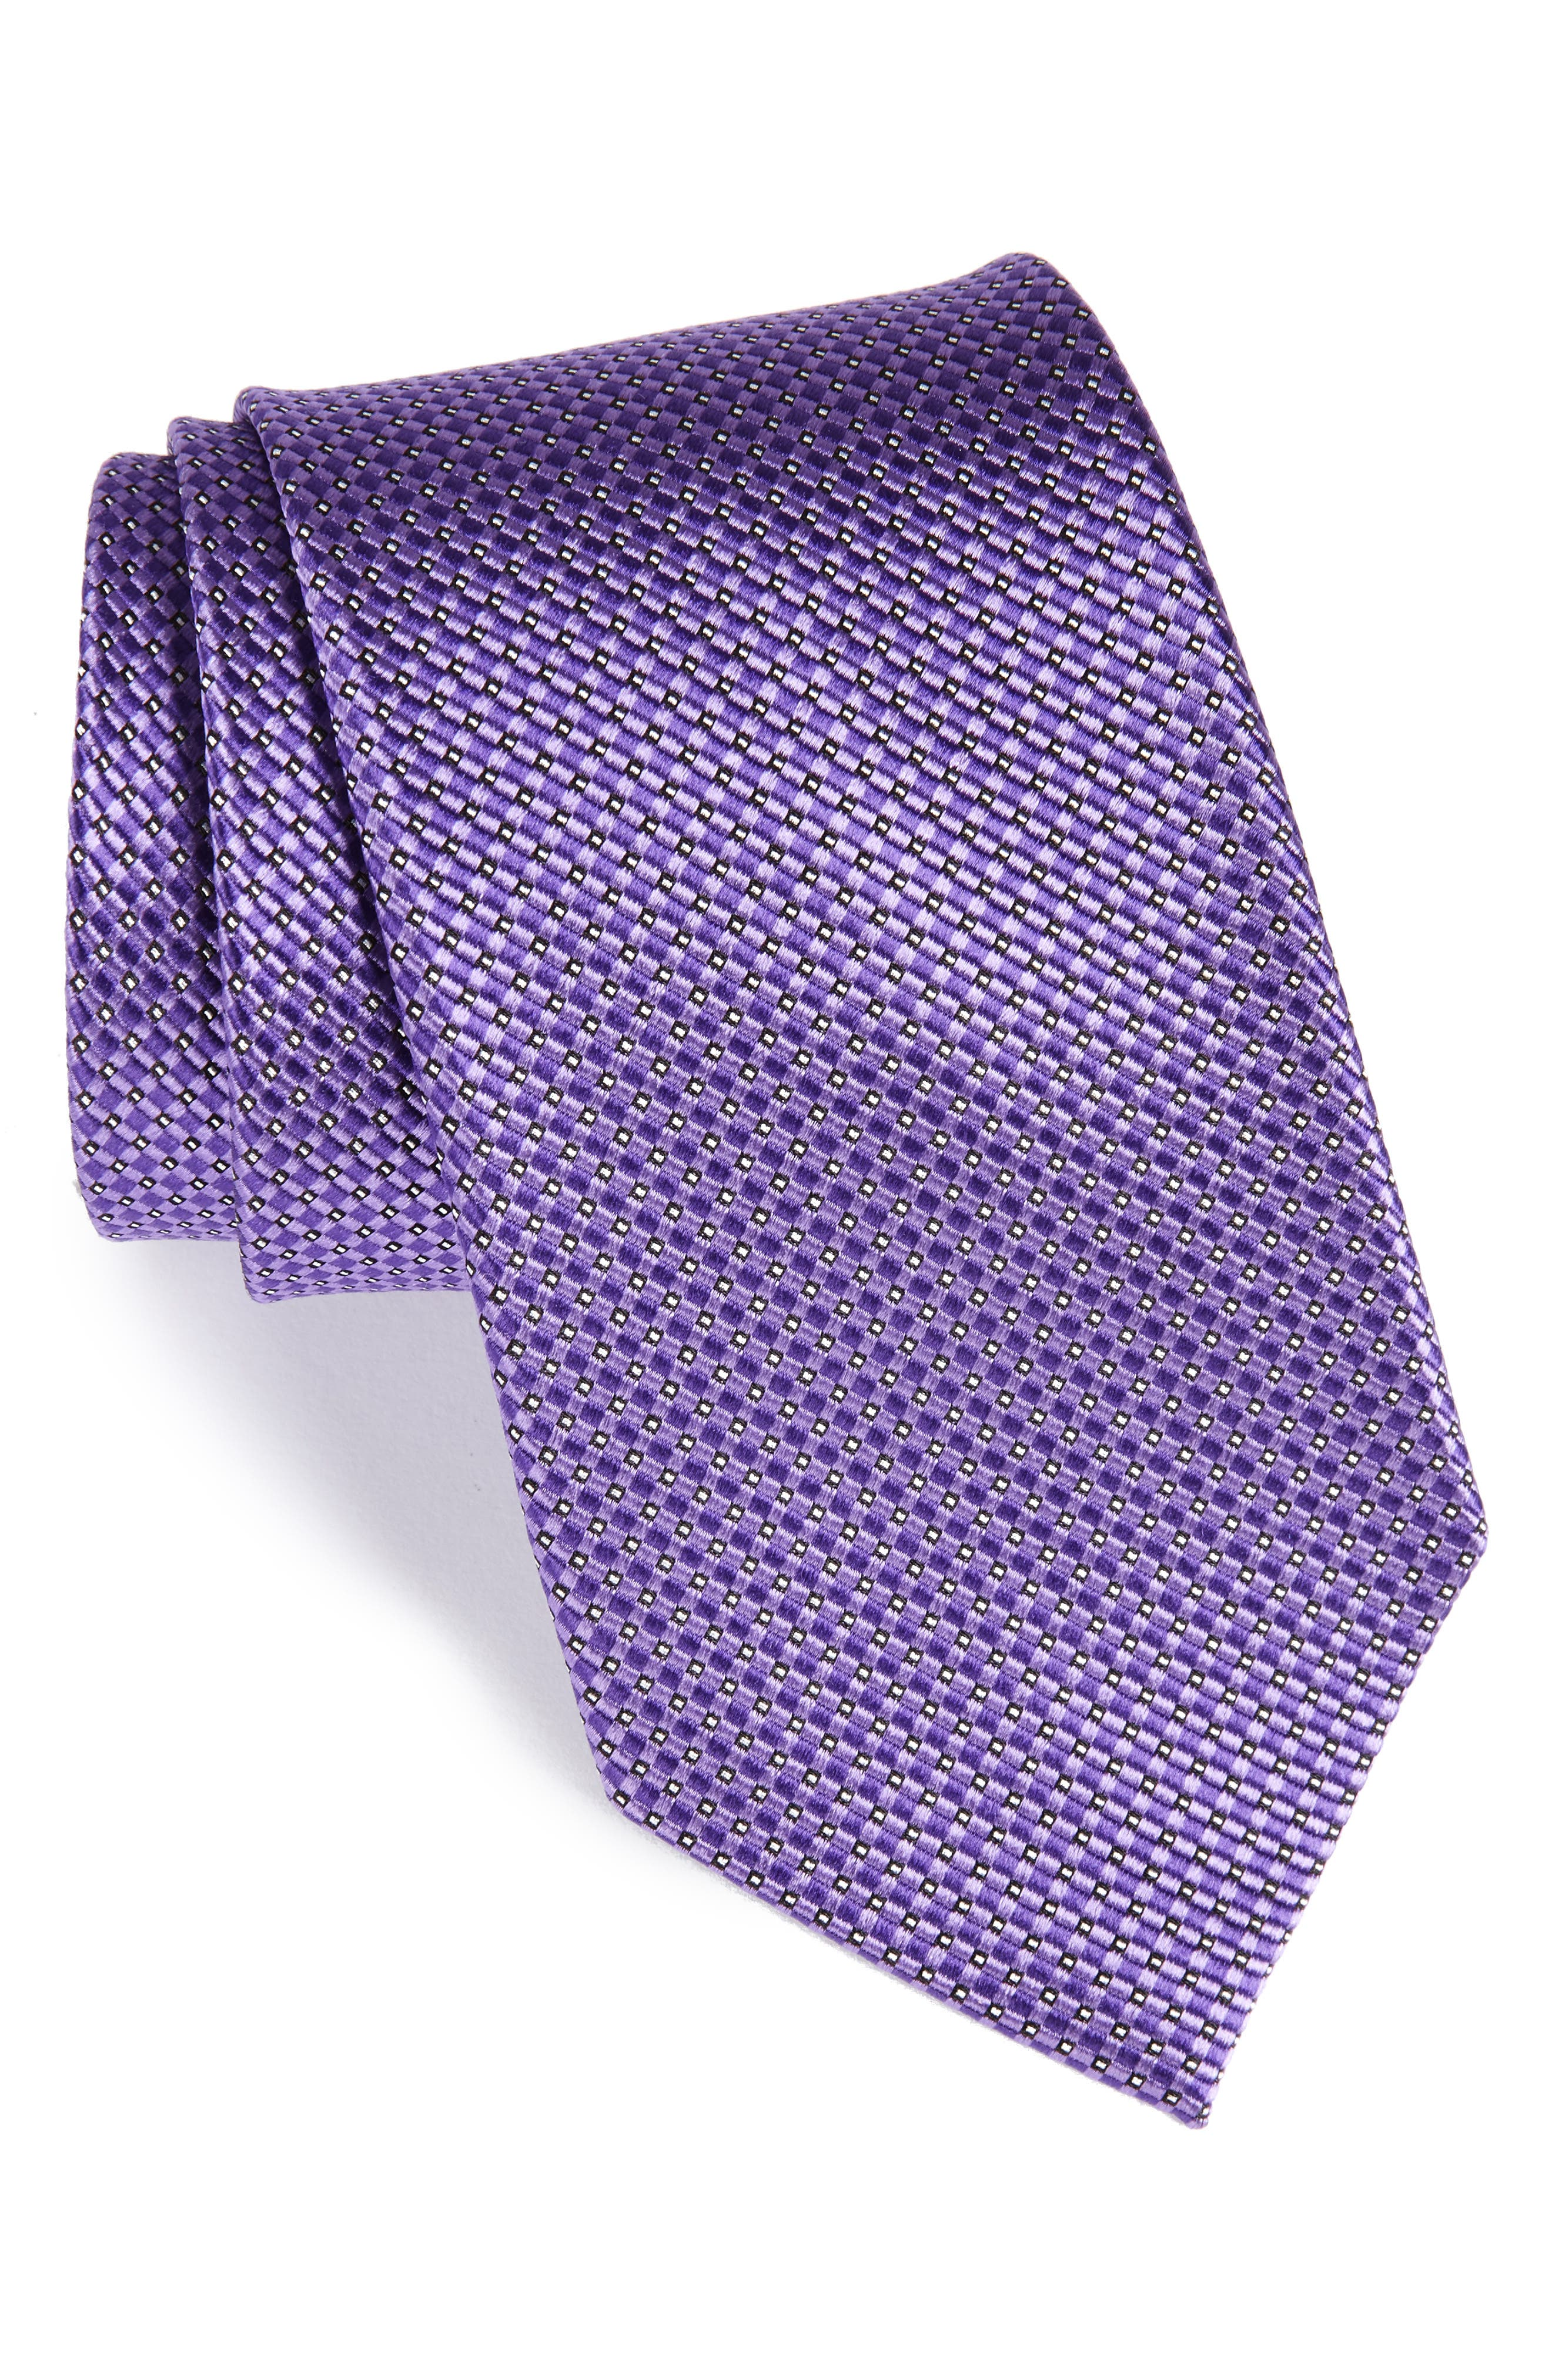 Main Image - Nordstrom Men's Shop Microgrid Silk Tie